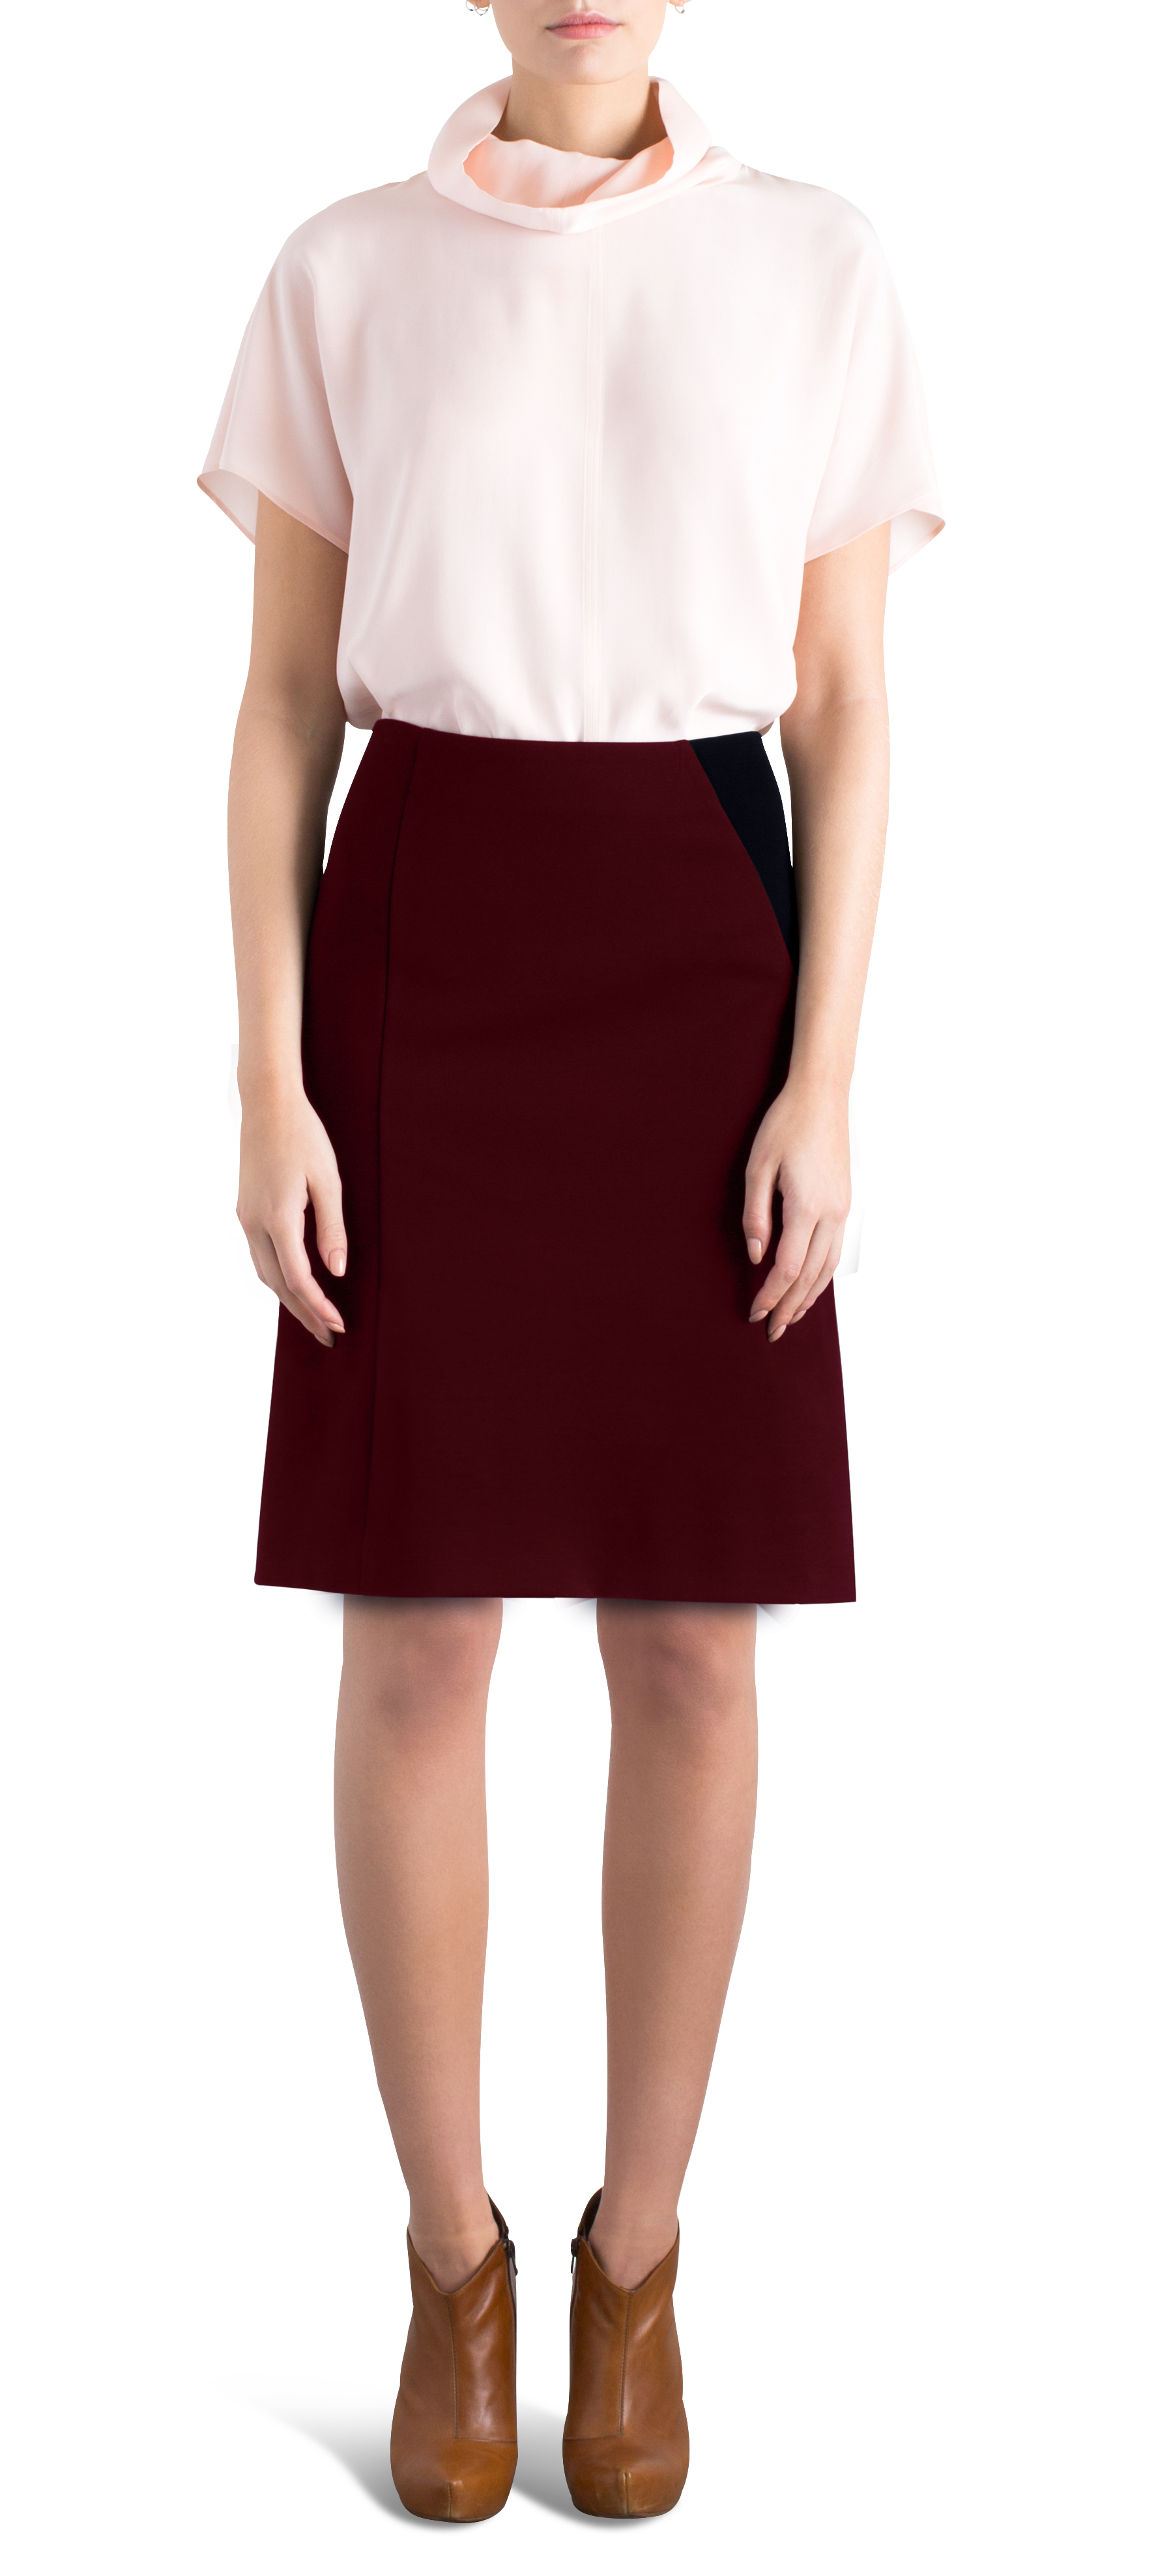 Bild 1 av Workday skirt